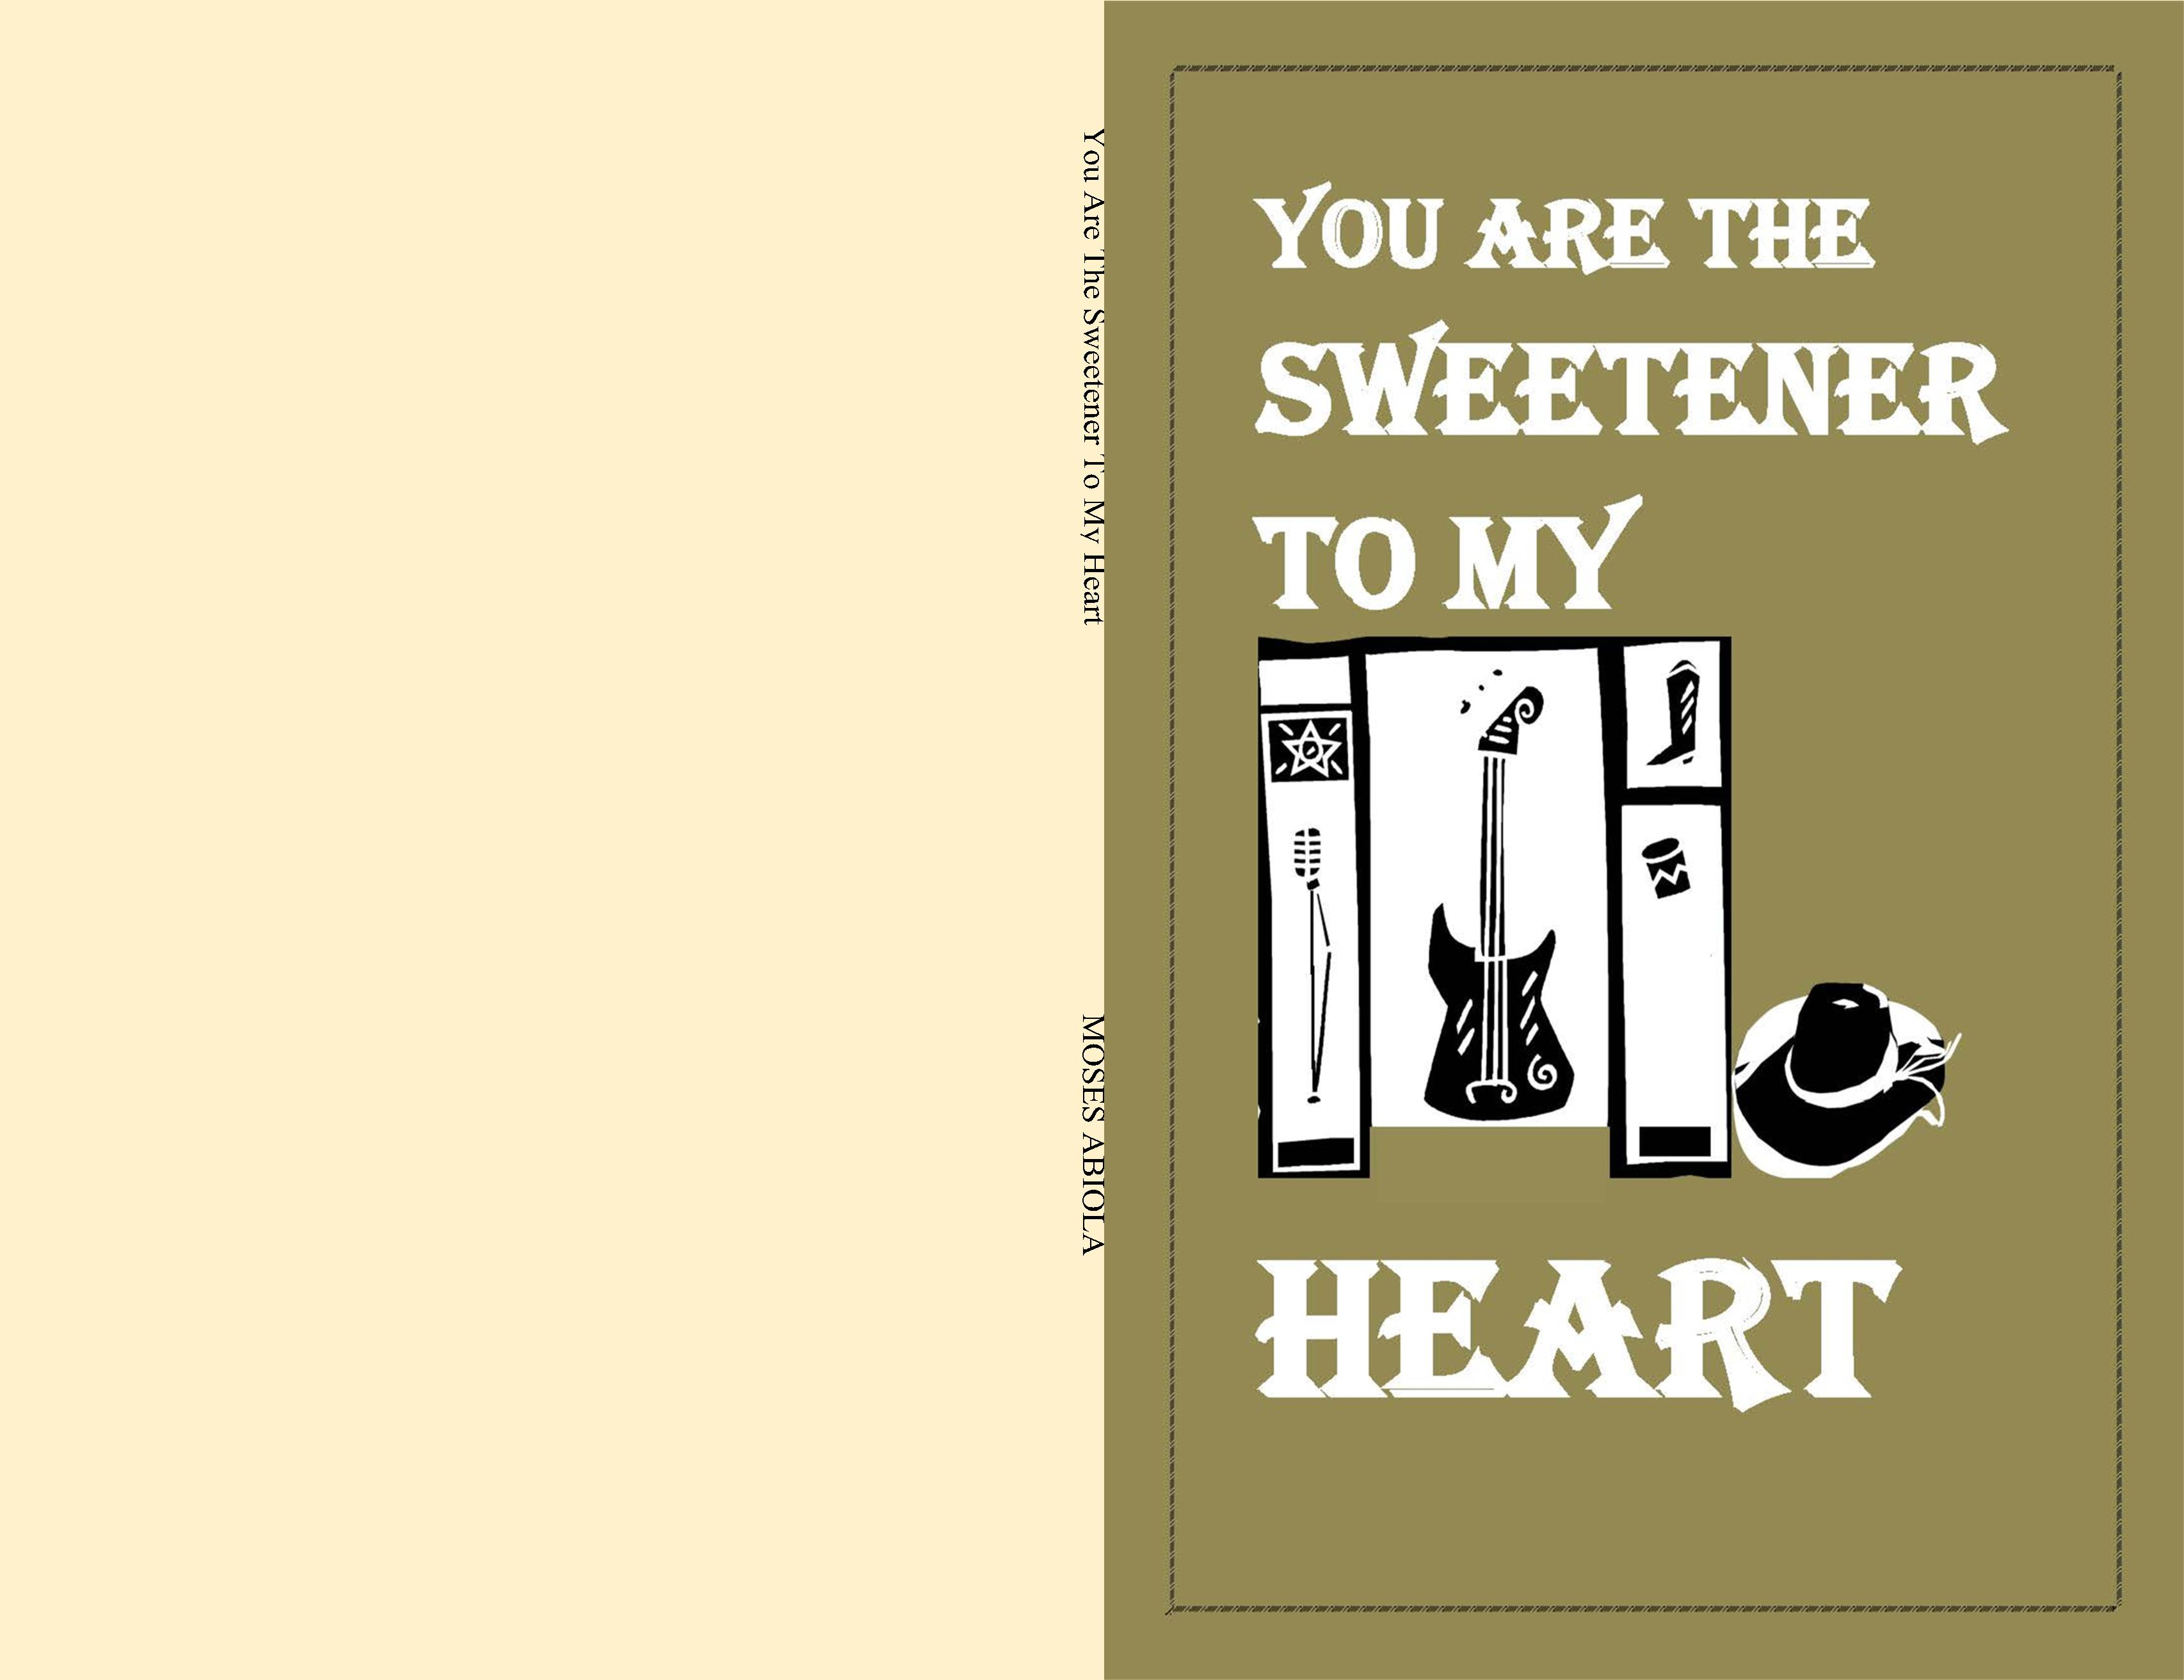 You Are The Sweetener To My Heart cover image